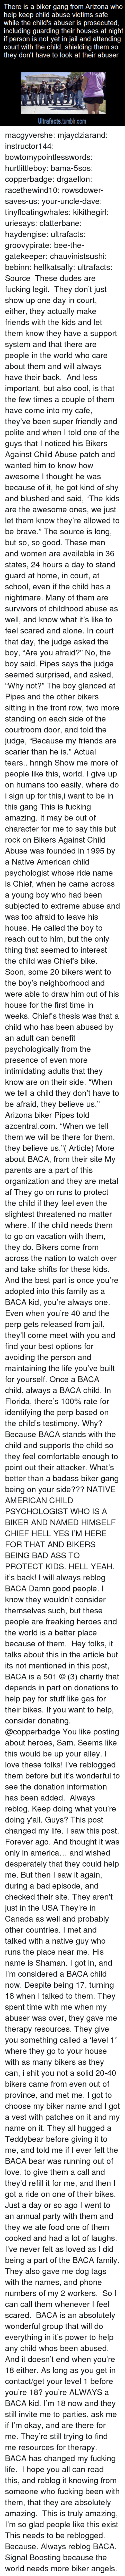 """Af, Being Alone, and America: There is a biker gang from Arizona who  help keep child abuse victims safe  while the child's abuser is prosecuted,  including guarding their houses at night  person is not yet in jail and attending  court with the child, shielding them so  they don't have to look at their abuser  Ultrafacts.tumblr.com macgyvershe: mjaydziarand:  instructor144:  bowtomypointlesswords:  hurtlittleboy:  bama-5sos:  copperbadge:  drgaellon:  racethewind10:  rowsdower-saves-us:  your-uncle-dave:  tinyfloatingwhales:  kikithegirl:  uriesays:  clatterbane:  haydengise:  ultrafacts:  groovypirate:  bee-the-gatekeeper:  chauvinistsushi:  bebinn:  hellkatsally:  ultrafacts:  Source  These dudes are fucking legit. They don't just show up one day in court, either, they actually make friends with the kids and let them know they have a support system and that there are people in the world who care about them and will always have their back. And less important, but also cool, is that the few times a couple of them have come into my cafe, they've been super friendly and polite and when I told one of the guys that I noticed his Bikers Against Child Abuse patch and wanted him to know how awesome I thought he was because of it, he got kind of shy and blushed and said, """"The kids are the awesome ones, we just let them know they're allowed to be brave.""""  The source is long, but so, so good. These men and women are available in 36 states, 24 hours a day to stand guard at home, in court, at school, even if the child has a nightmare. Many of them are survivors of childhood abuse as well, and know what it's like to feel scared and alone.  In court that day, the judge asked the boy, """"Are you afraid?"""" No, the boy said. Pipes says the judge seemed surprised, and asked, """"Why not?"""" The boy glanced at Pipes and the other bikers sitting in the front row, two more standing on each side of the courtroom door, and told the judge, """"Because my friends are scarier than he is.""""   Actual tear"""